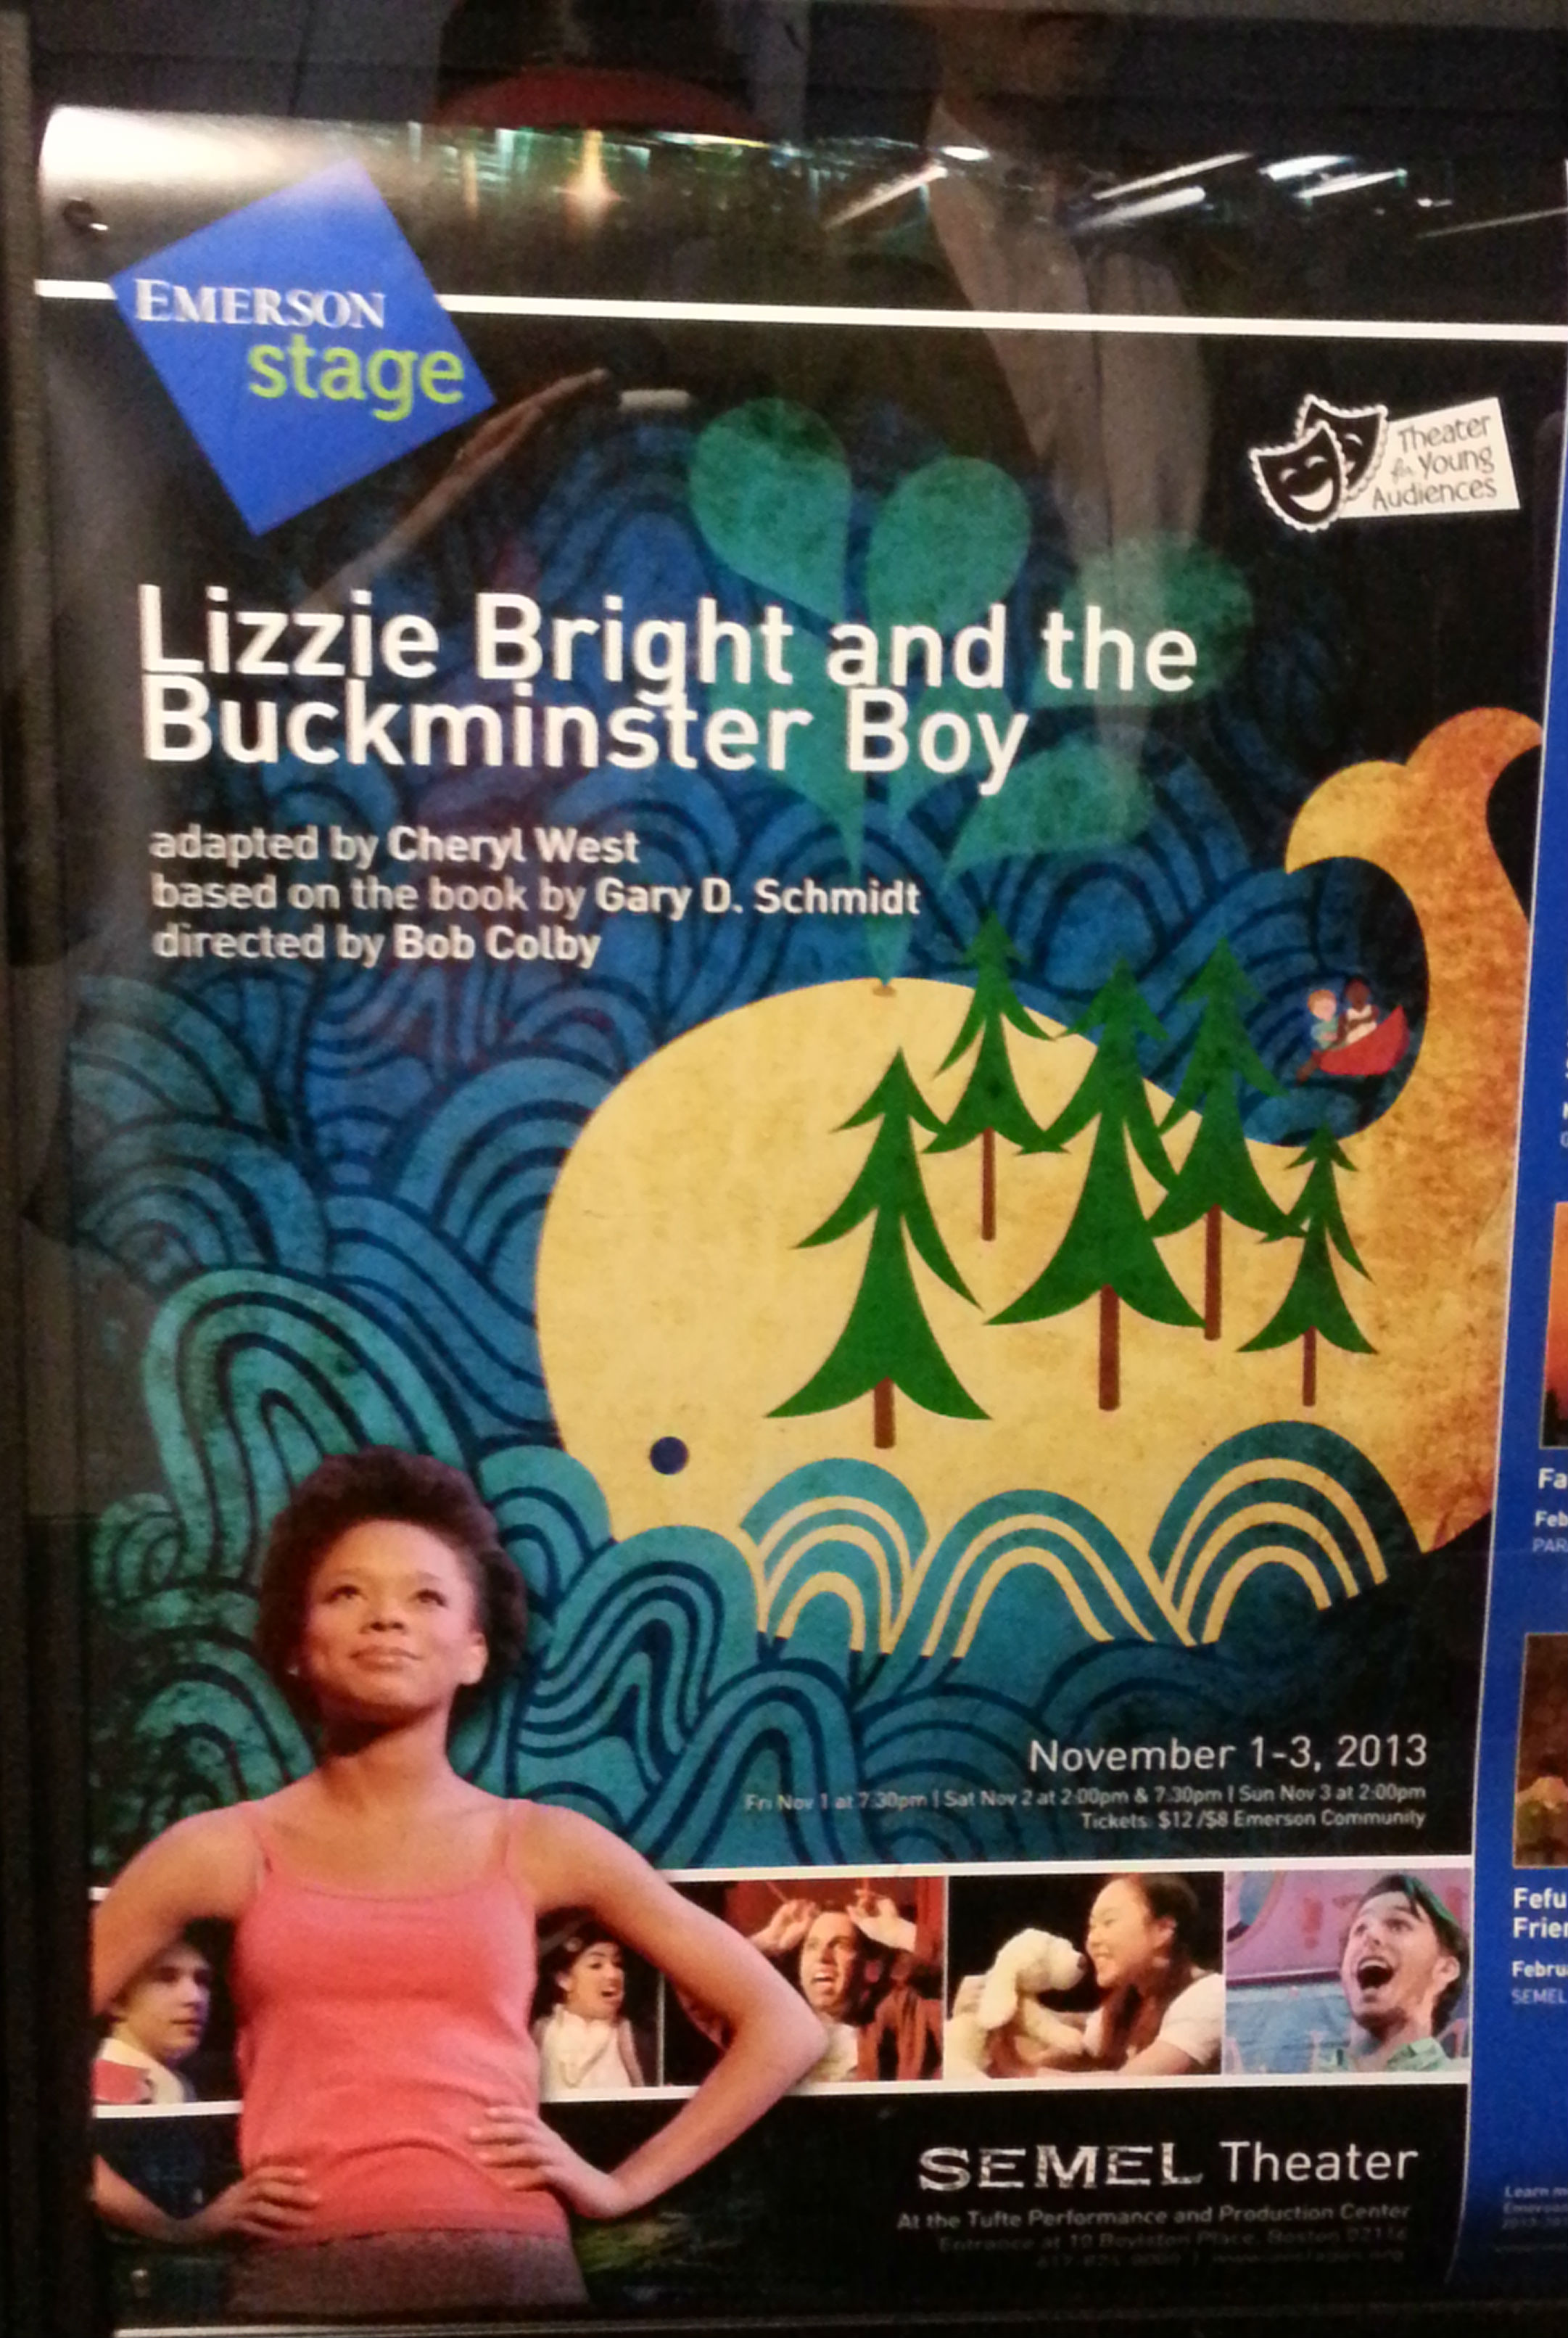 2013-11-02 Lizzie Bright and the Buckminster Boy Poster